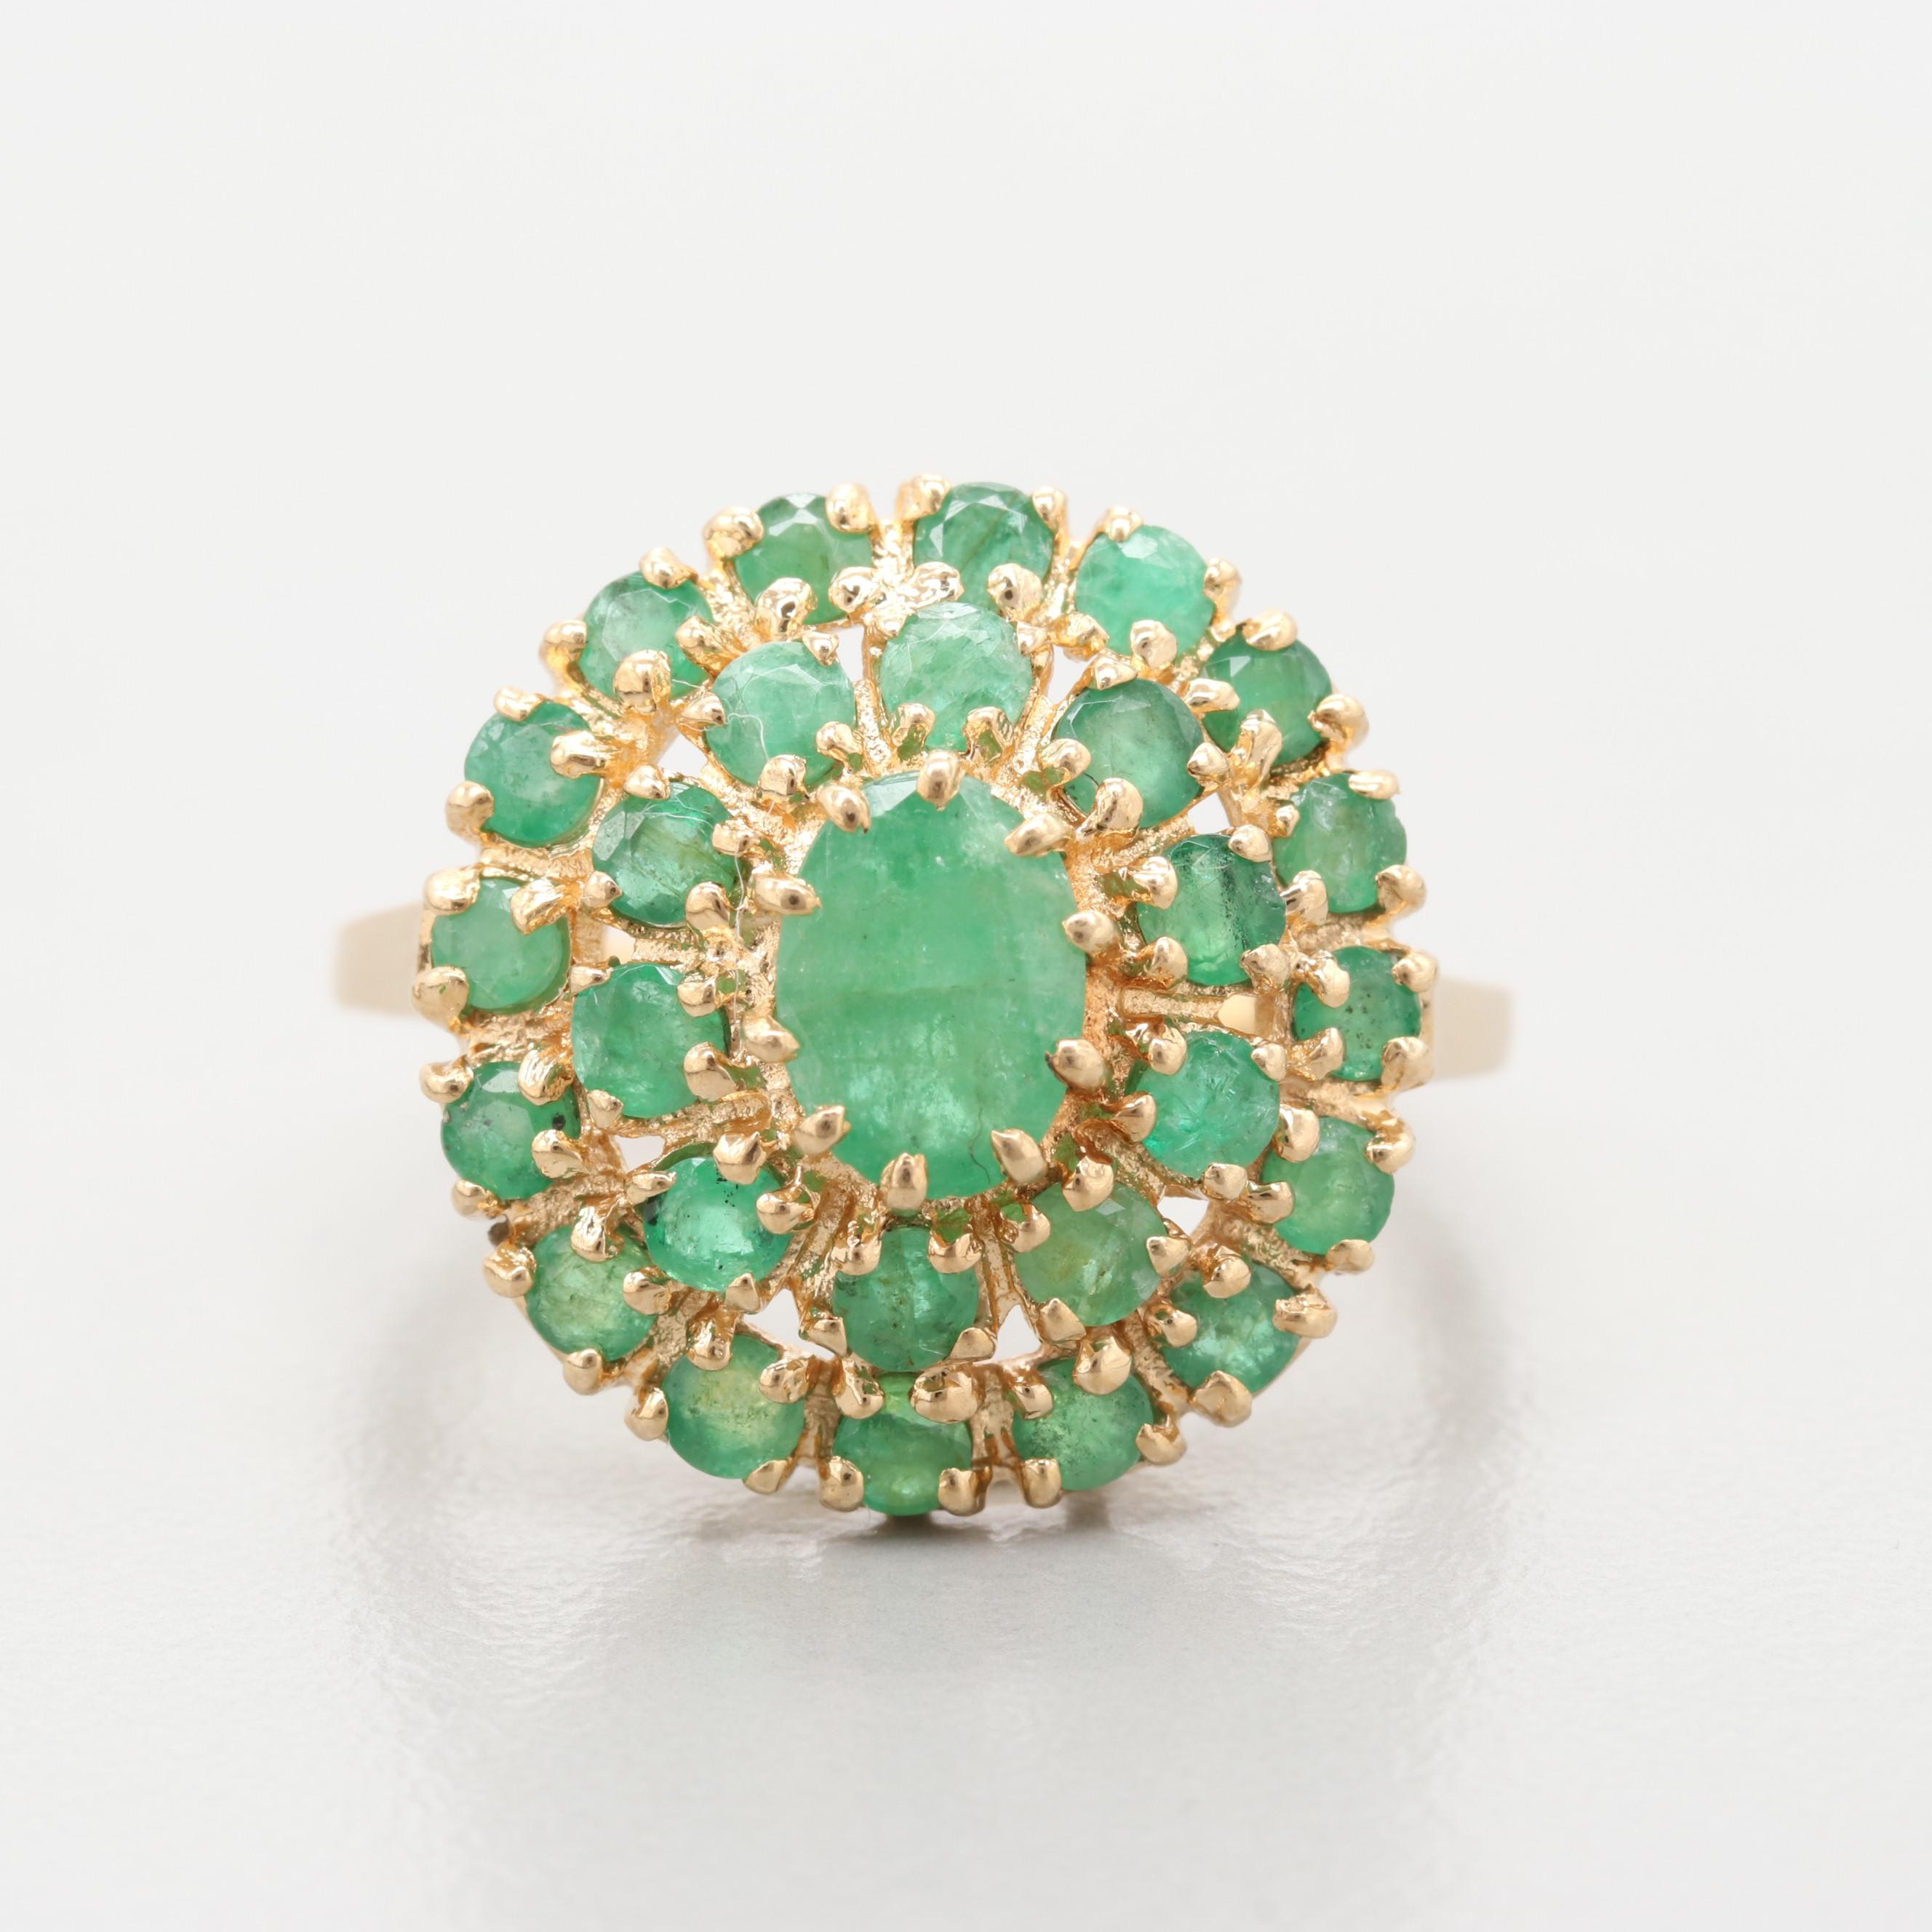 14K Yellow Gold Emerald Cocktail Ring